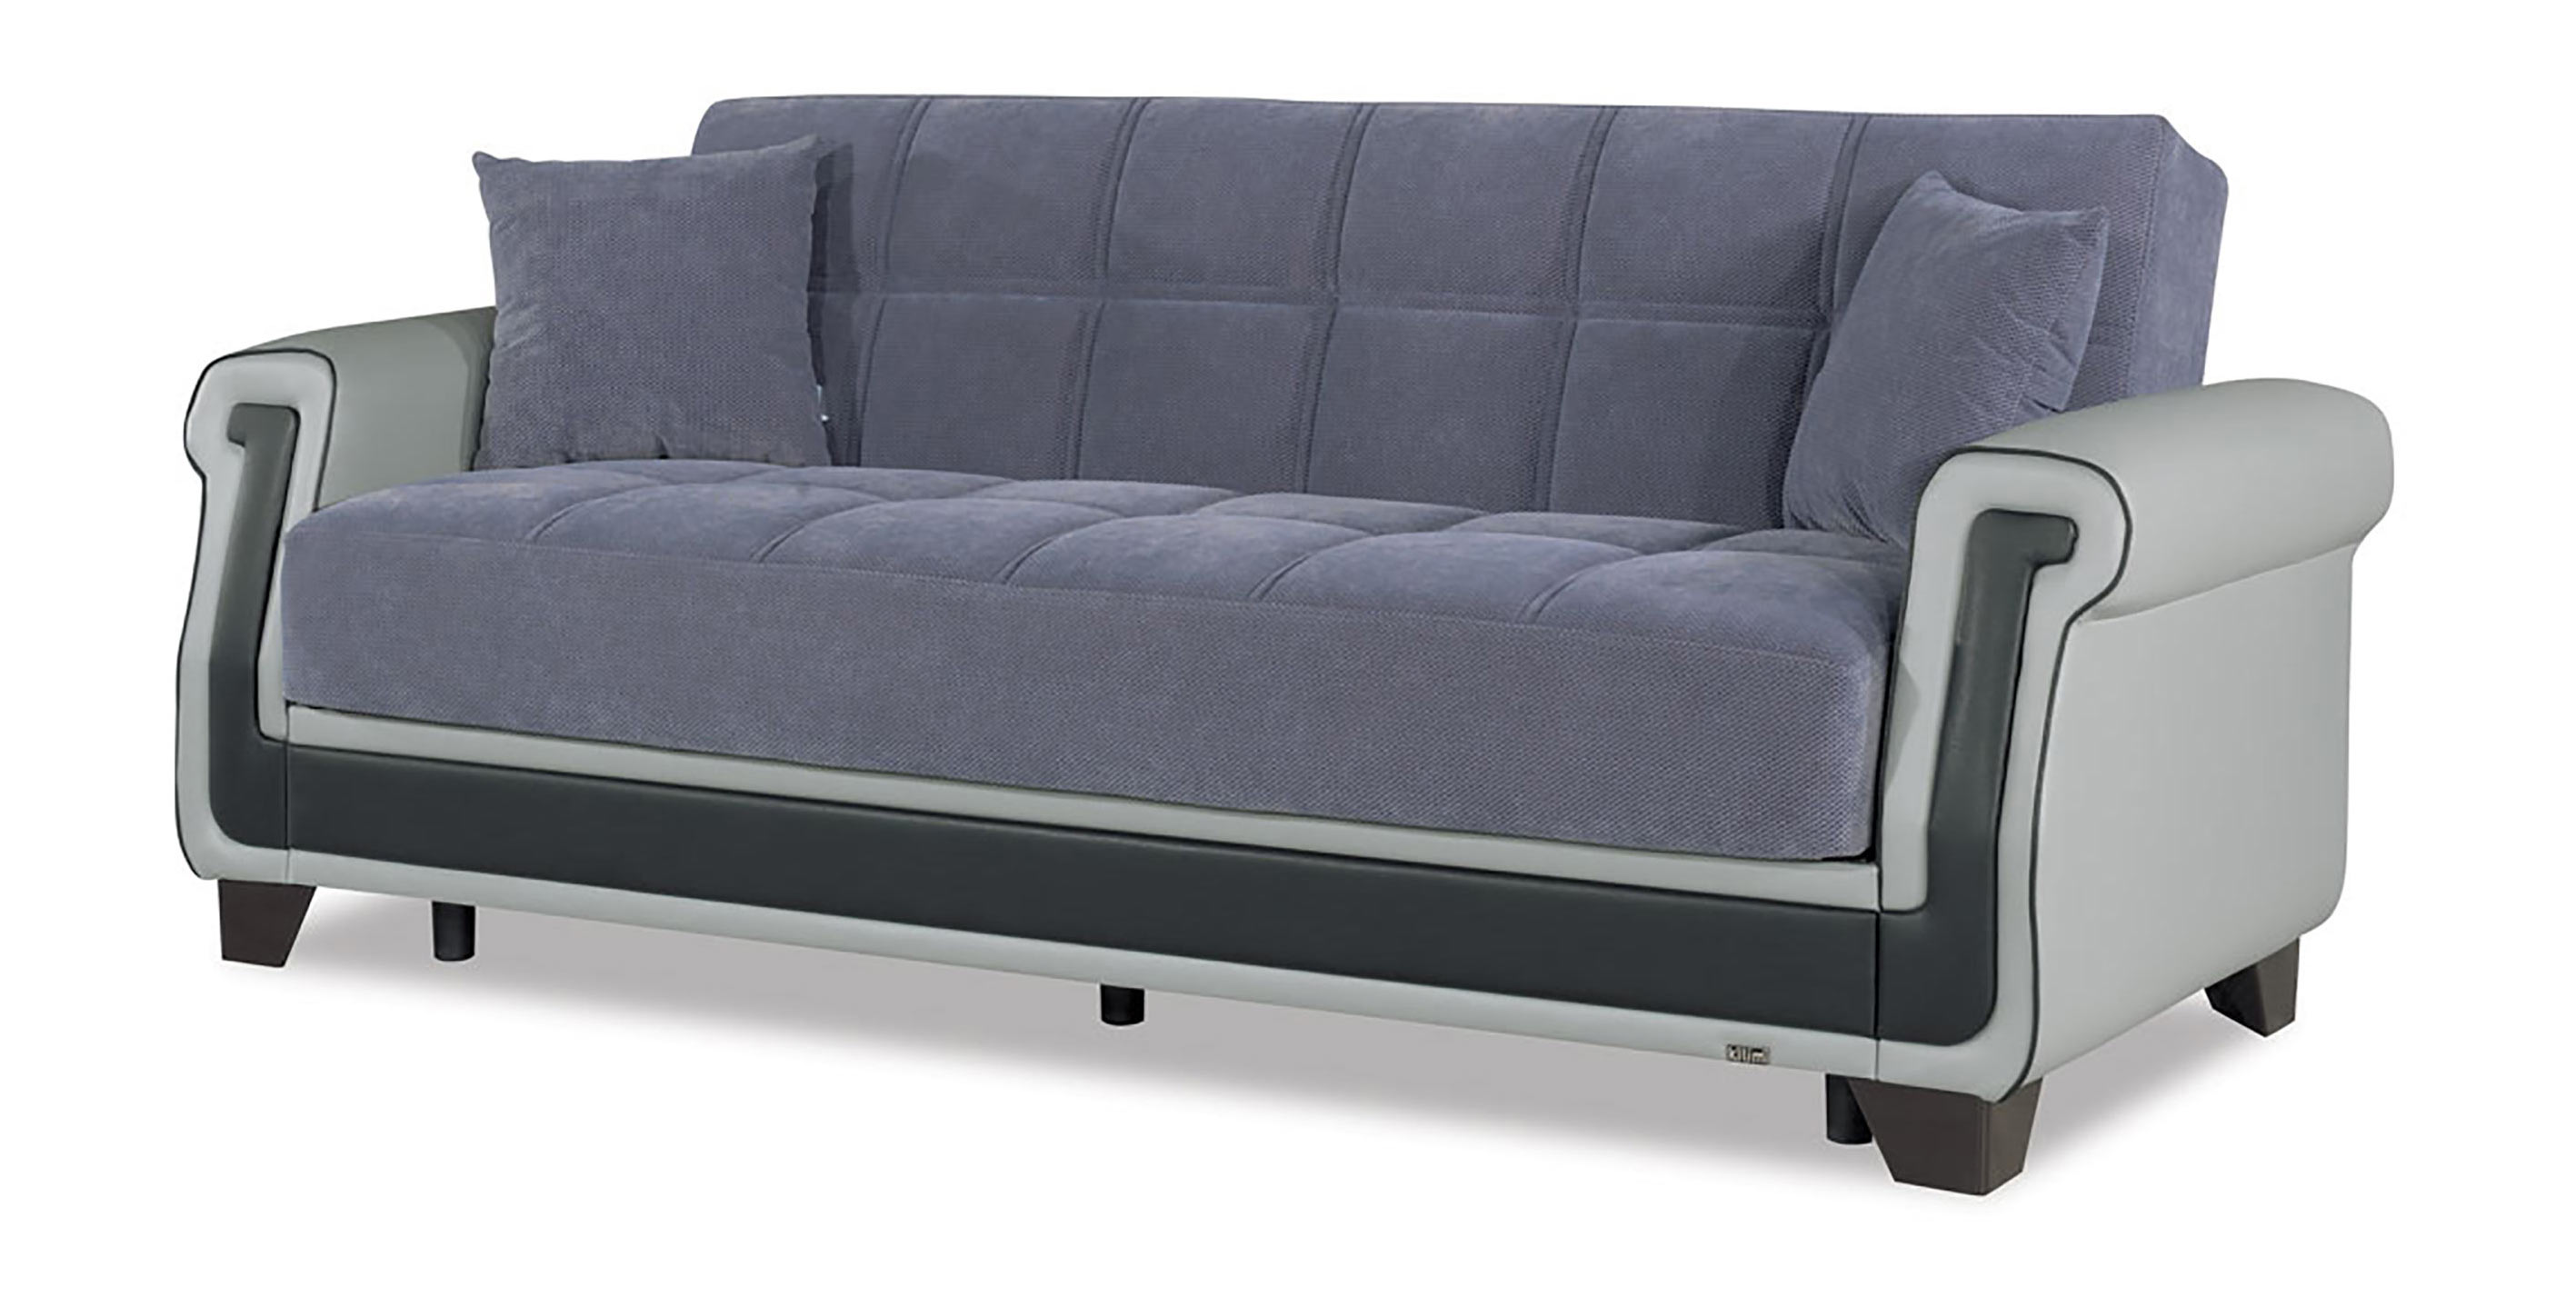 Miraculous Proline Gray Convertible Sofa Bed By Casamode Pdpeps Interior Chair Design Pdpepsorg